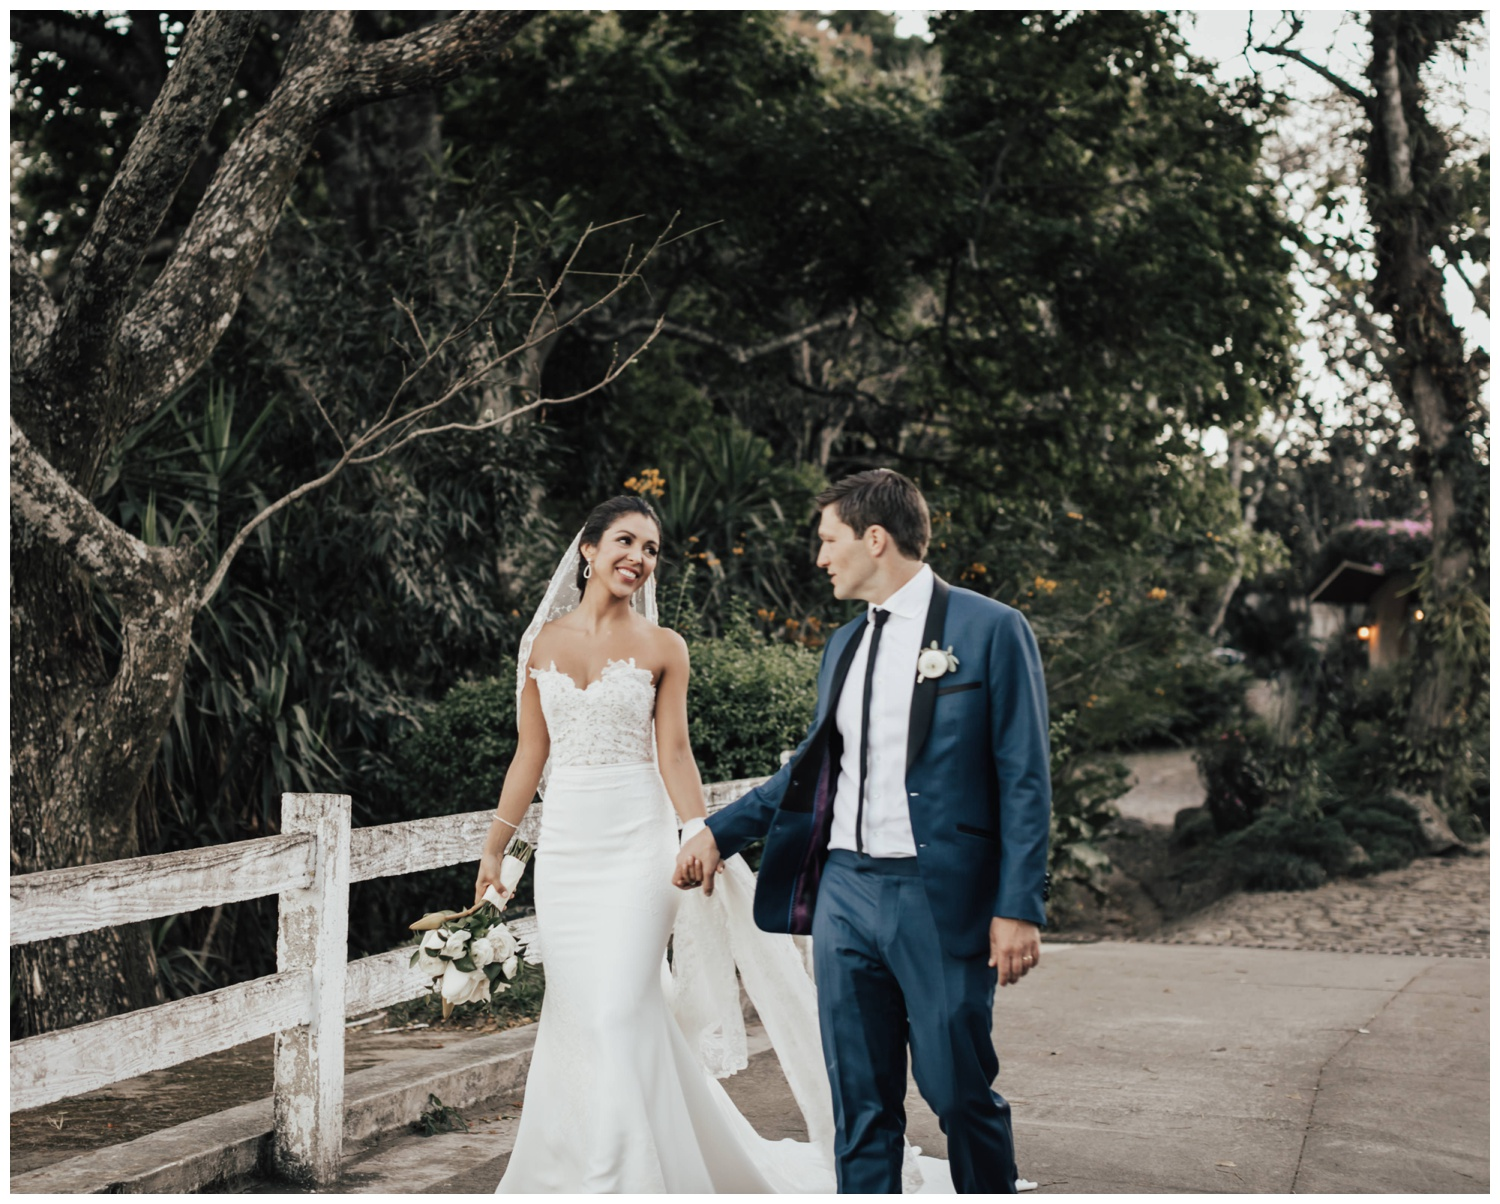 adriana_rivera_miranda_weddings_el_salvador_44.jpg